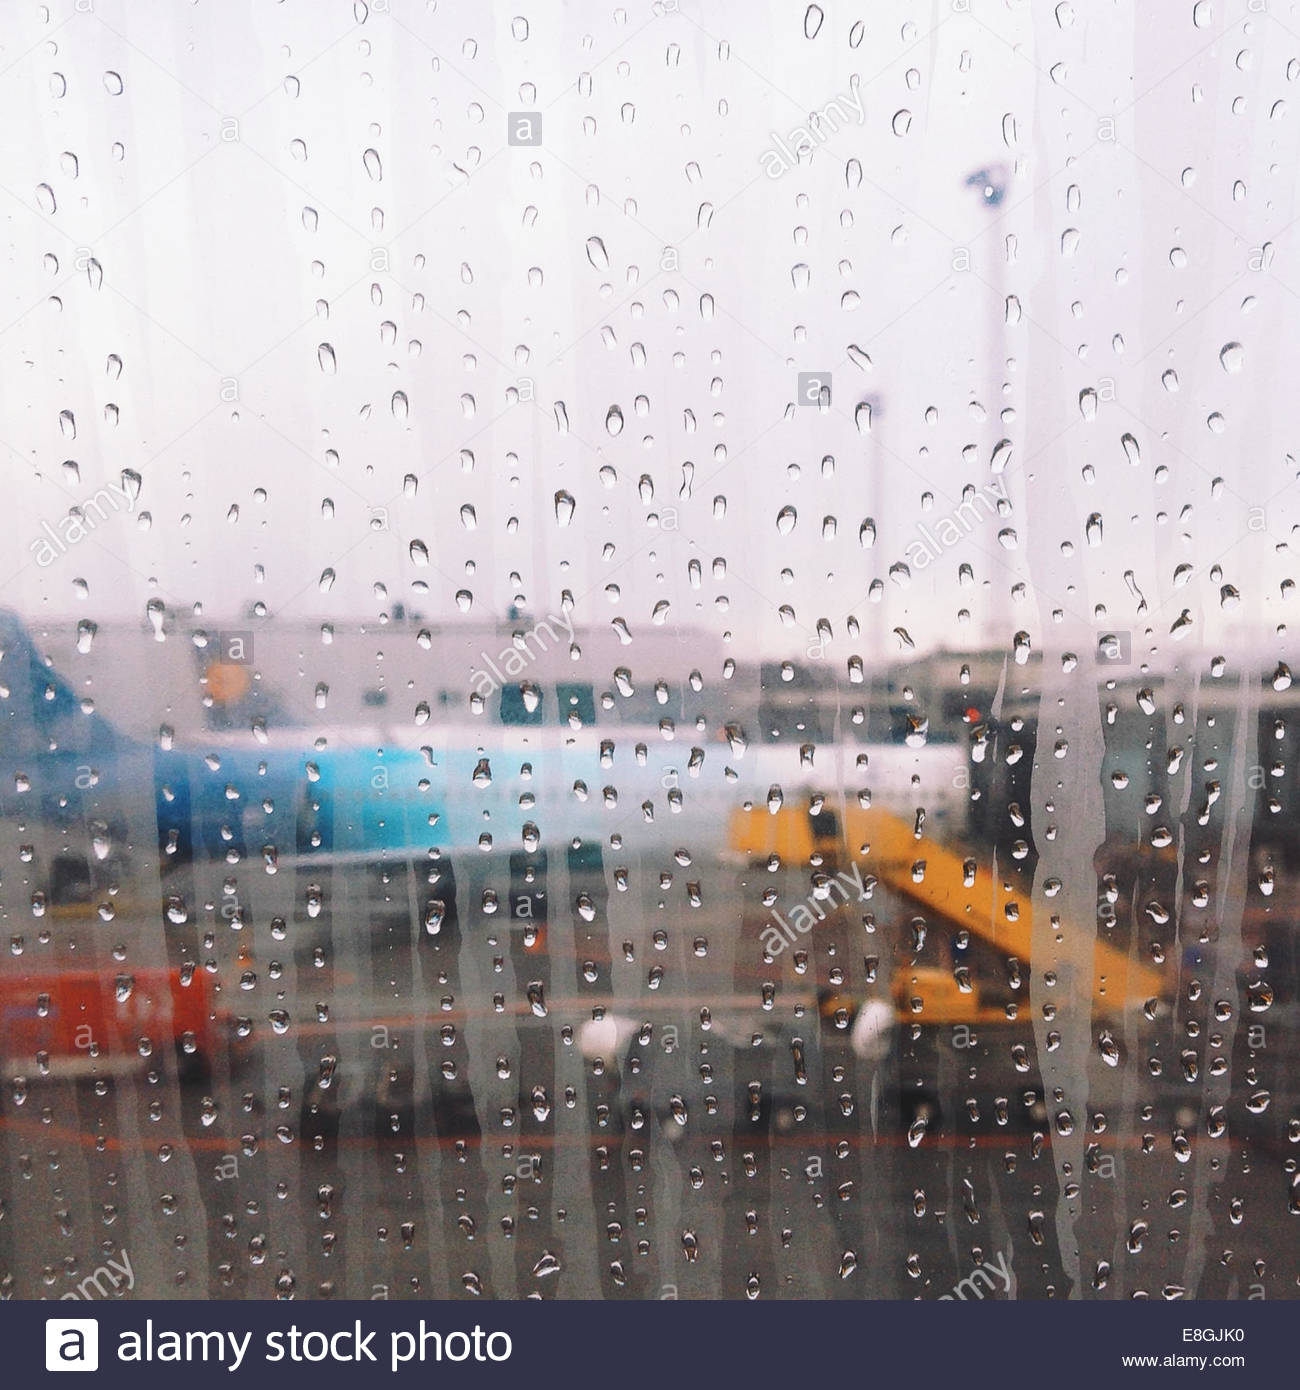 Rain on window with airport view - Stock Image